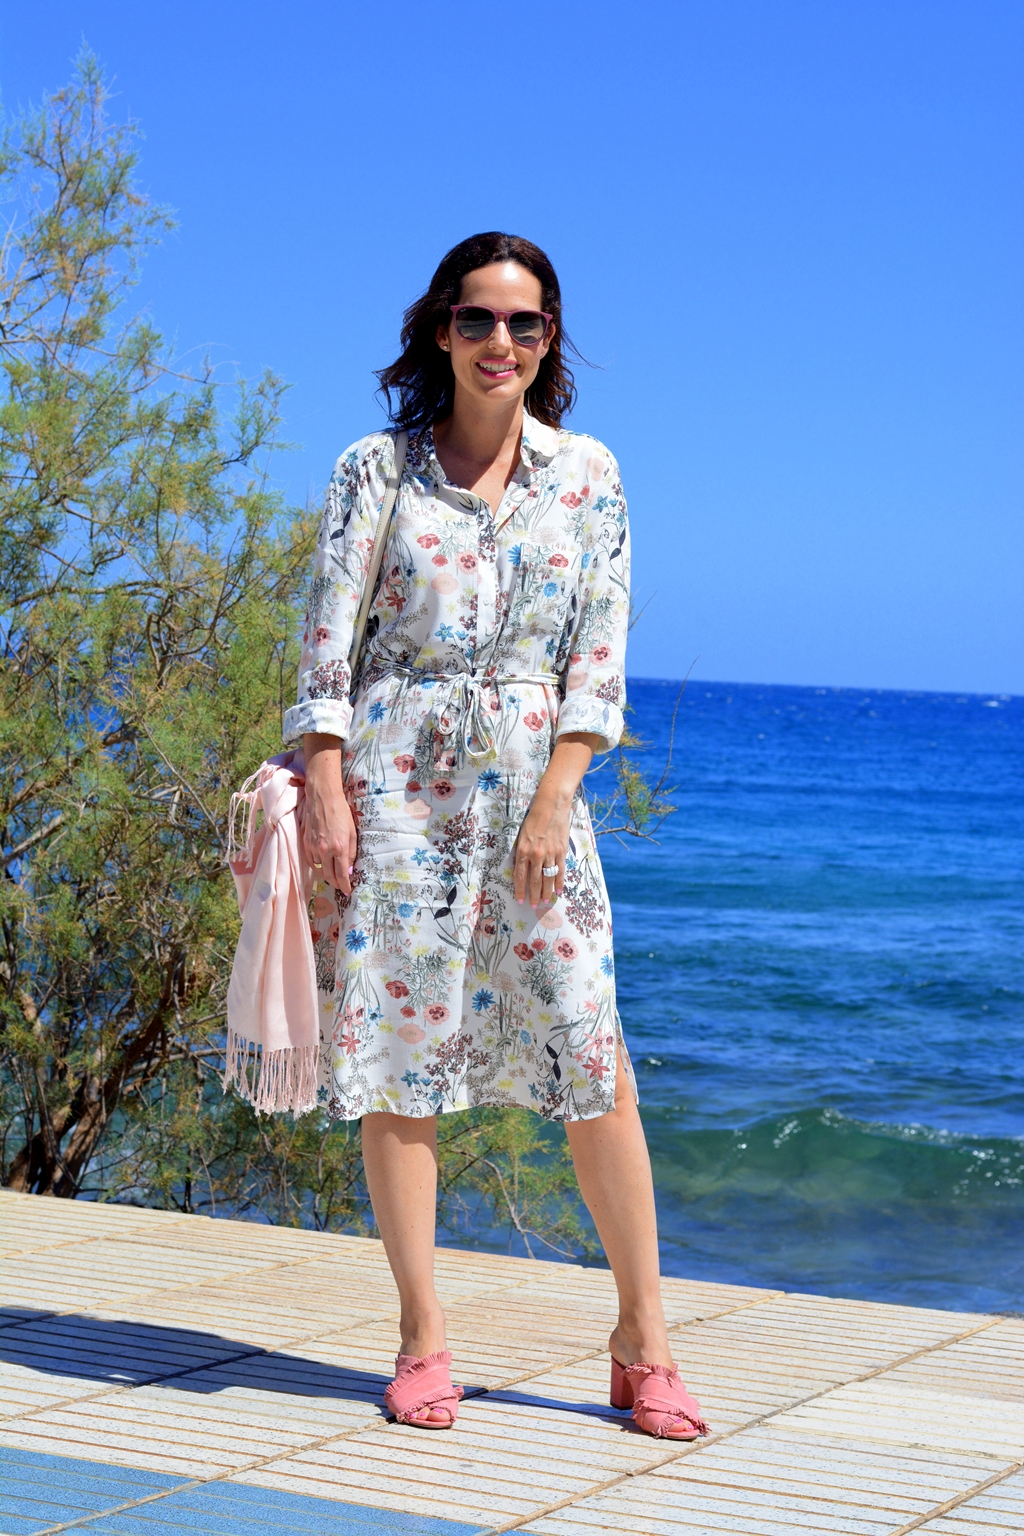 flowers-and-shirt-dress-outfit